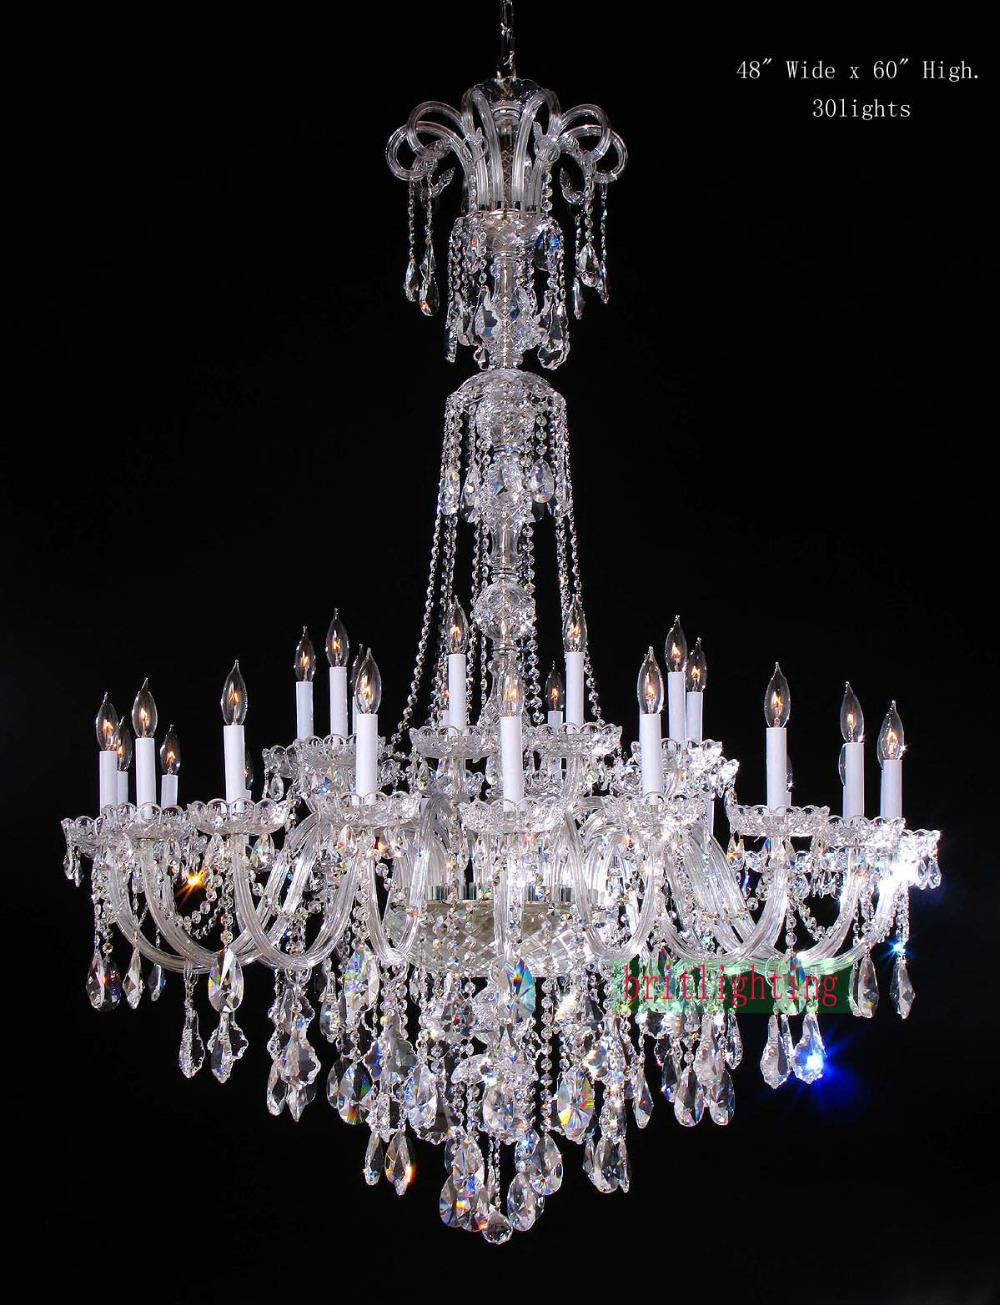 Lamp modern crystal chandeliers 5 star hotel chandelier led crystal lamp modern crystal chandeliers 5 star hotel chandelier led crystal candle chandeliers large elegant crystal chandelier foyer ceiling light pendant hanging aloadofball